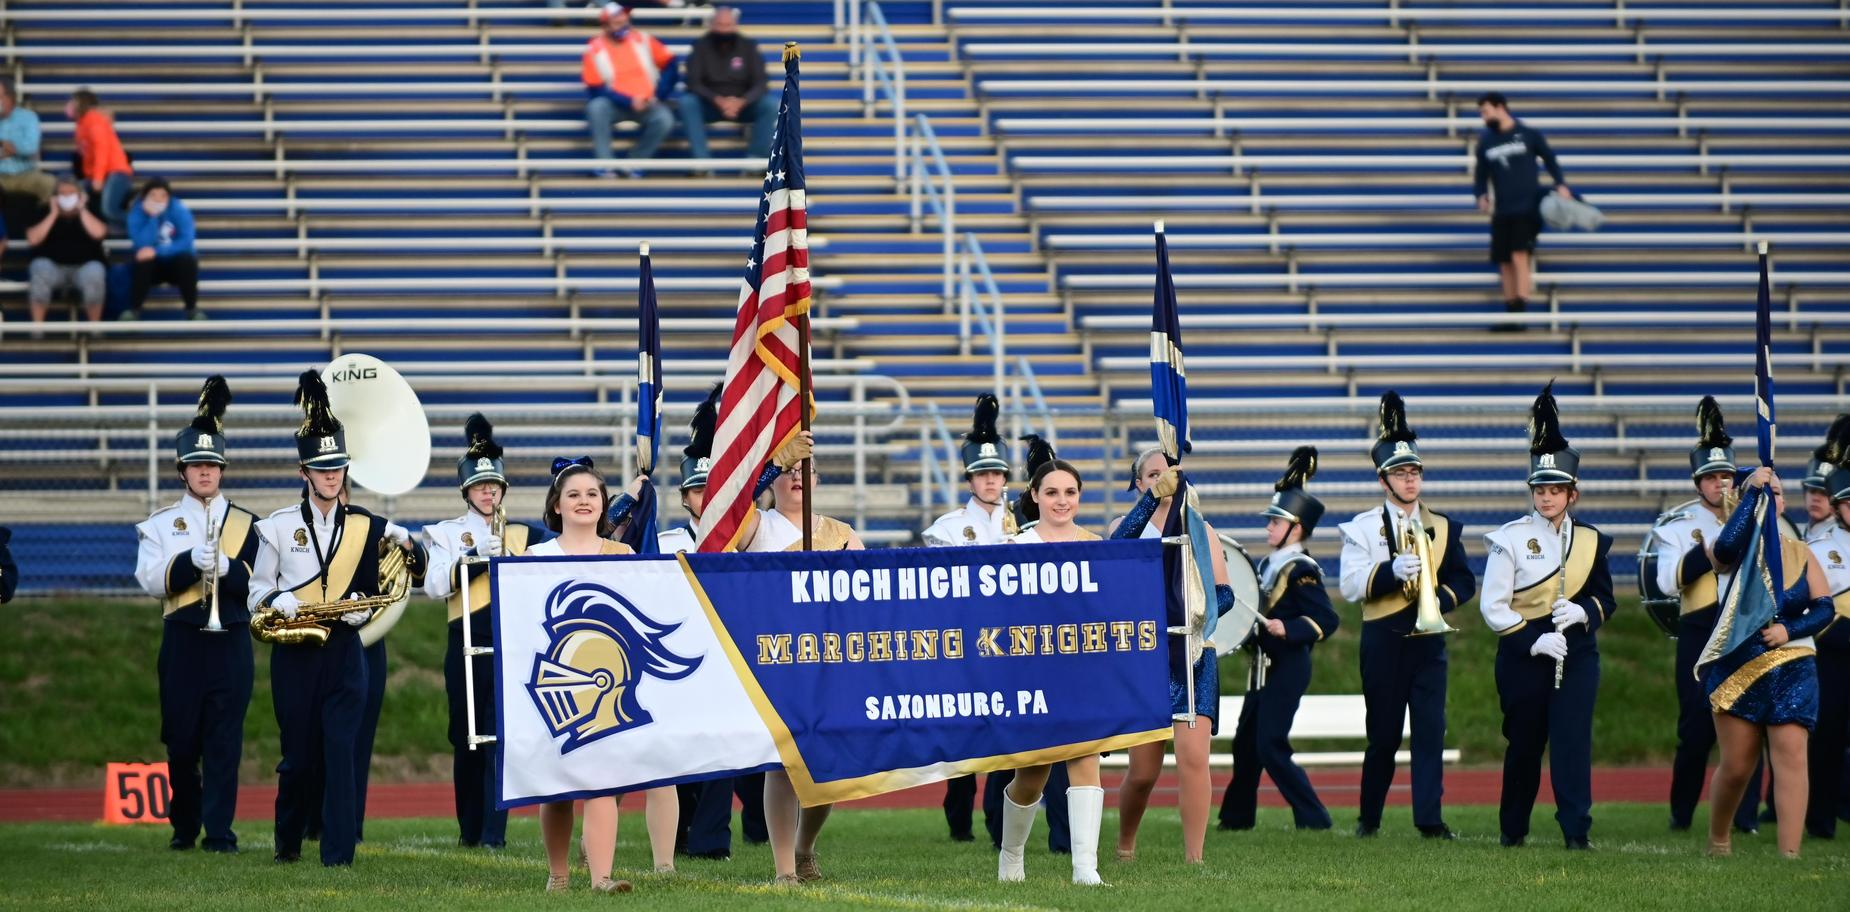 Band members carrying school banner on field